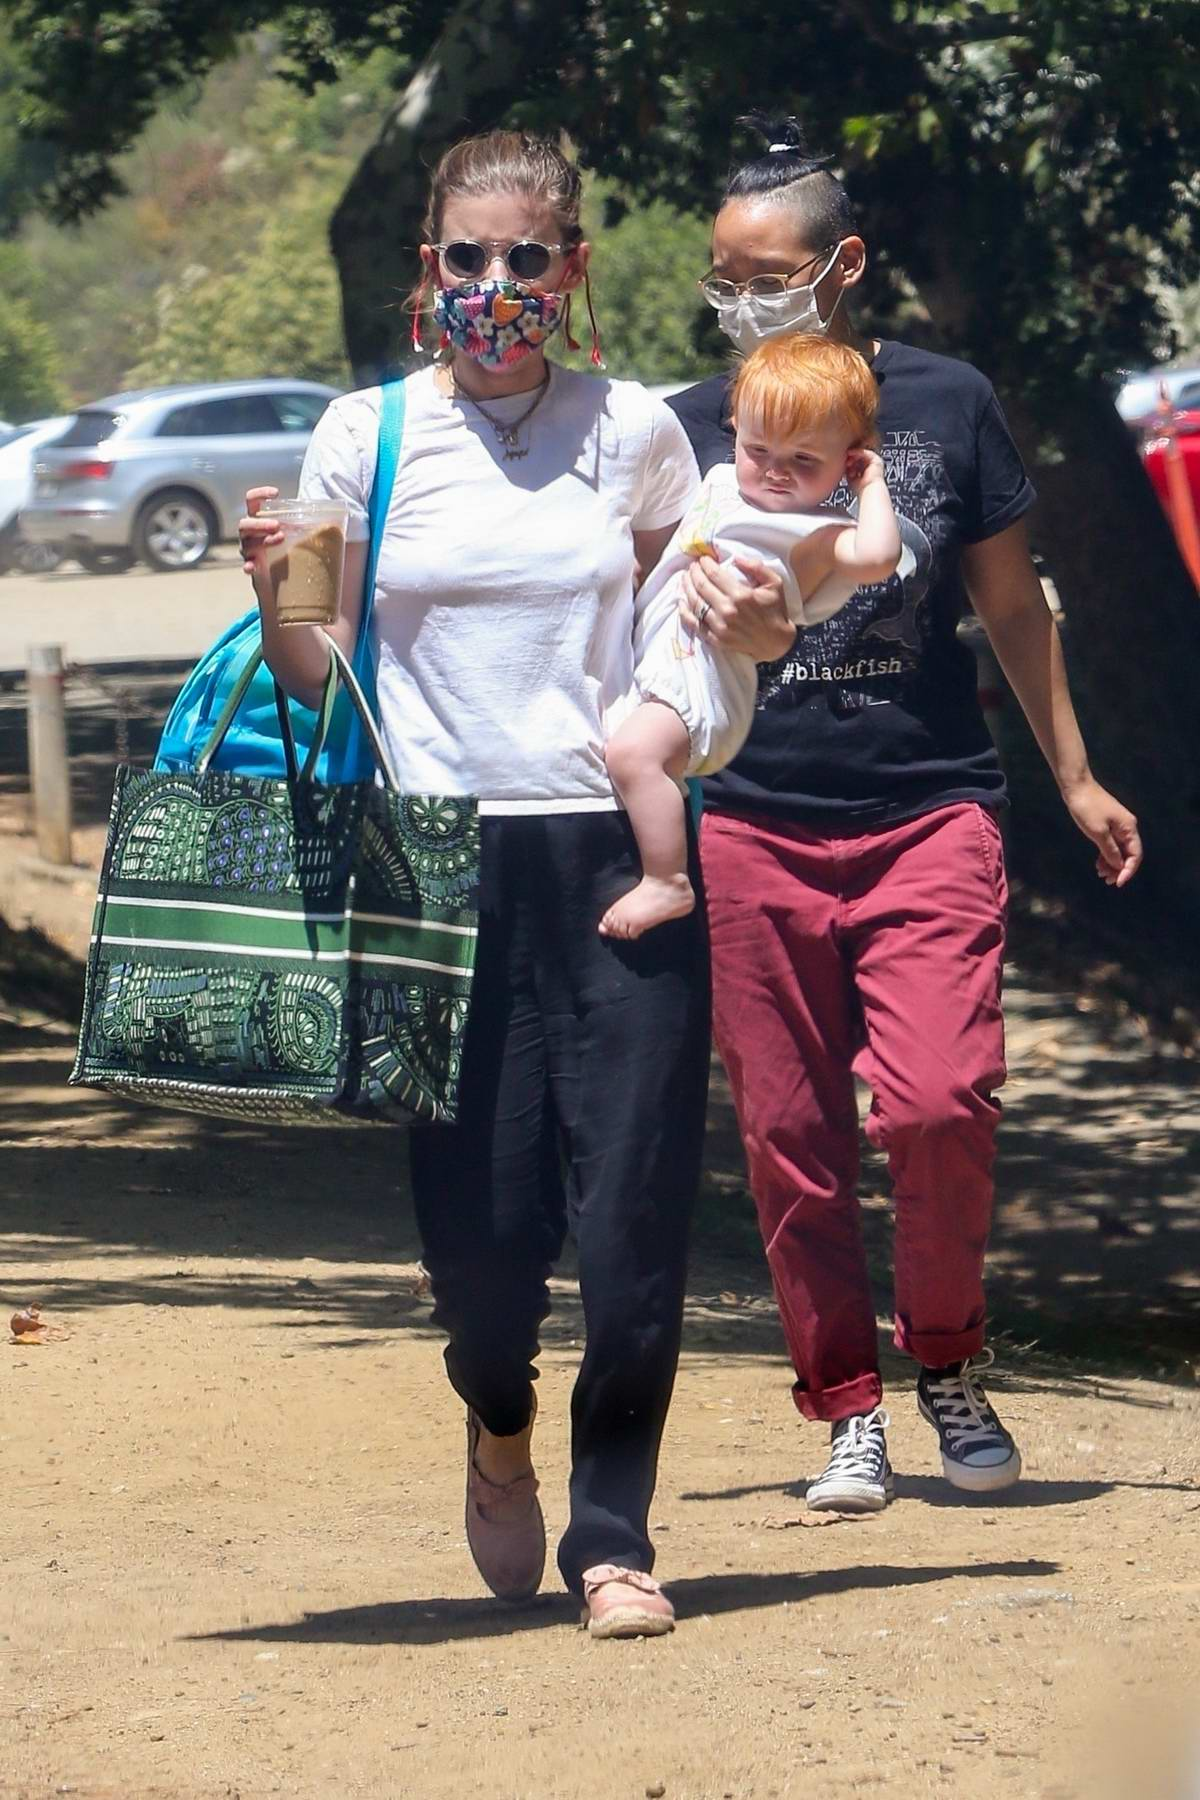 Kate Mara takes her baby to the park in Los Feliz, California